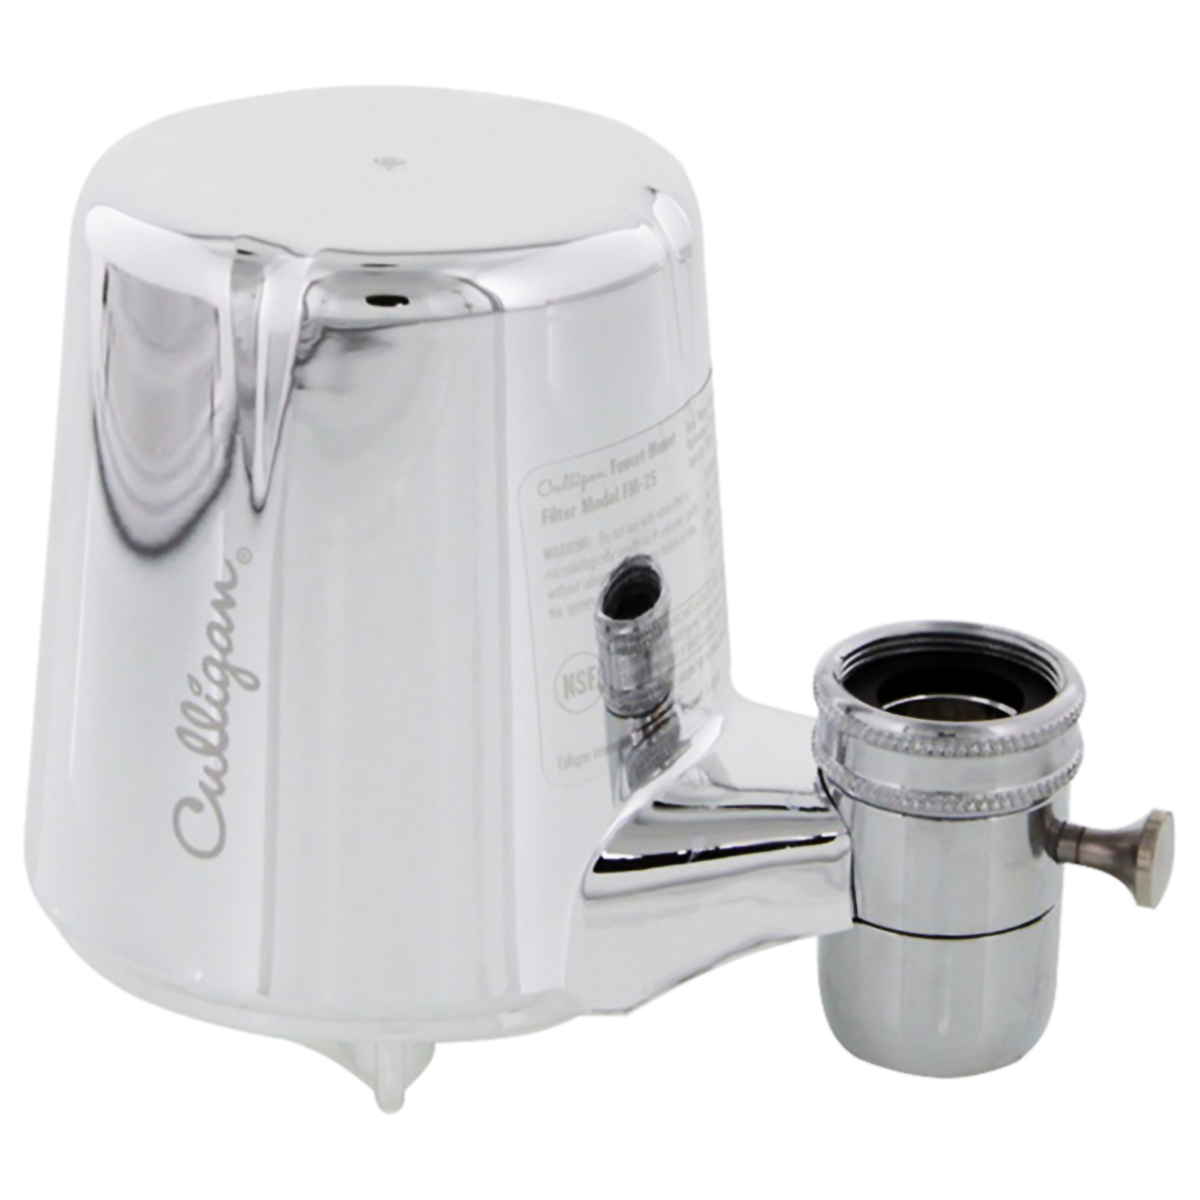 Culligan FM-25 Chrome Faucet Mount With Advanced Water Filtration